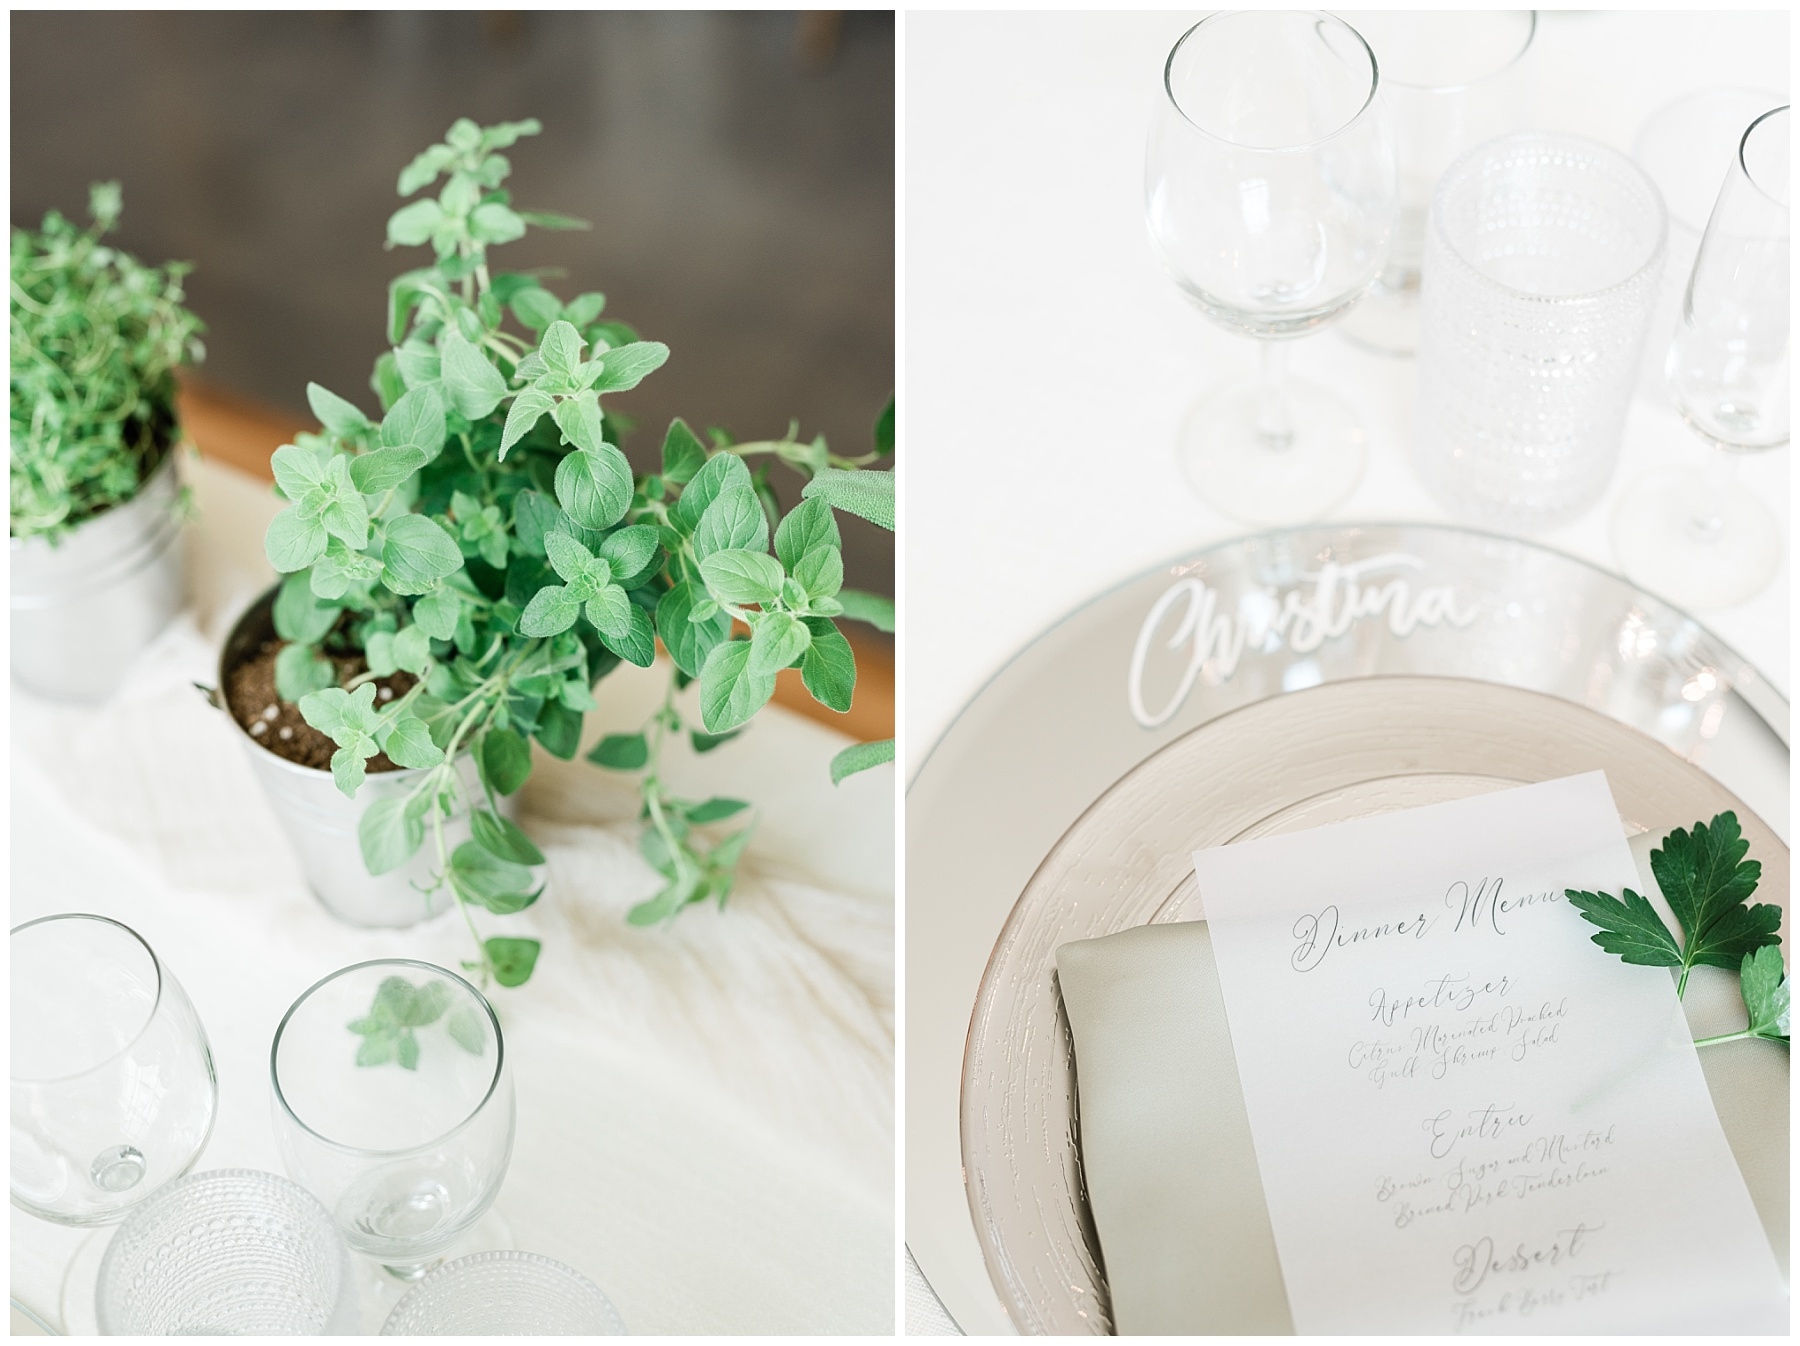 Textural Organic Wedding in All White Venue by Kelsi Kliethermes Wedding Photographer - Missouri, Midwest, and Destinations_0090.jpg